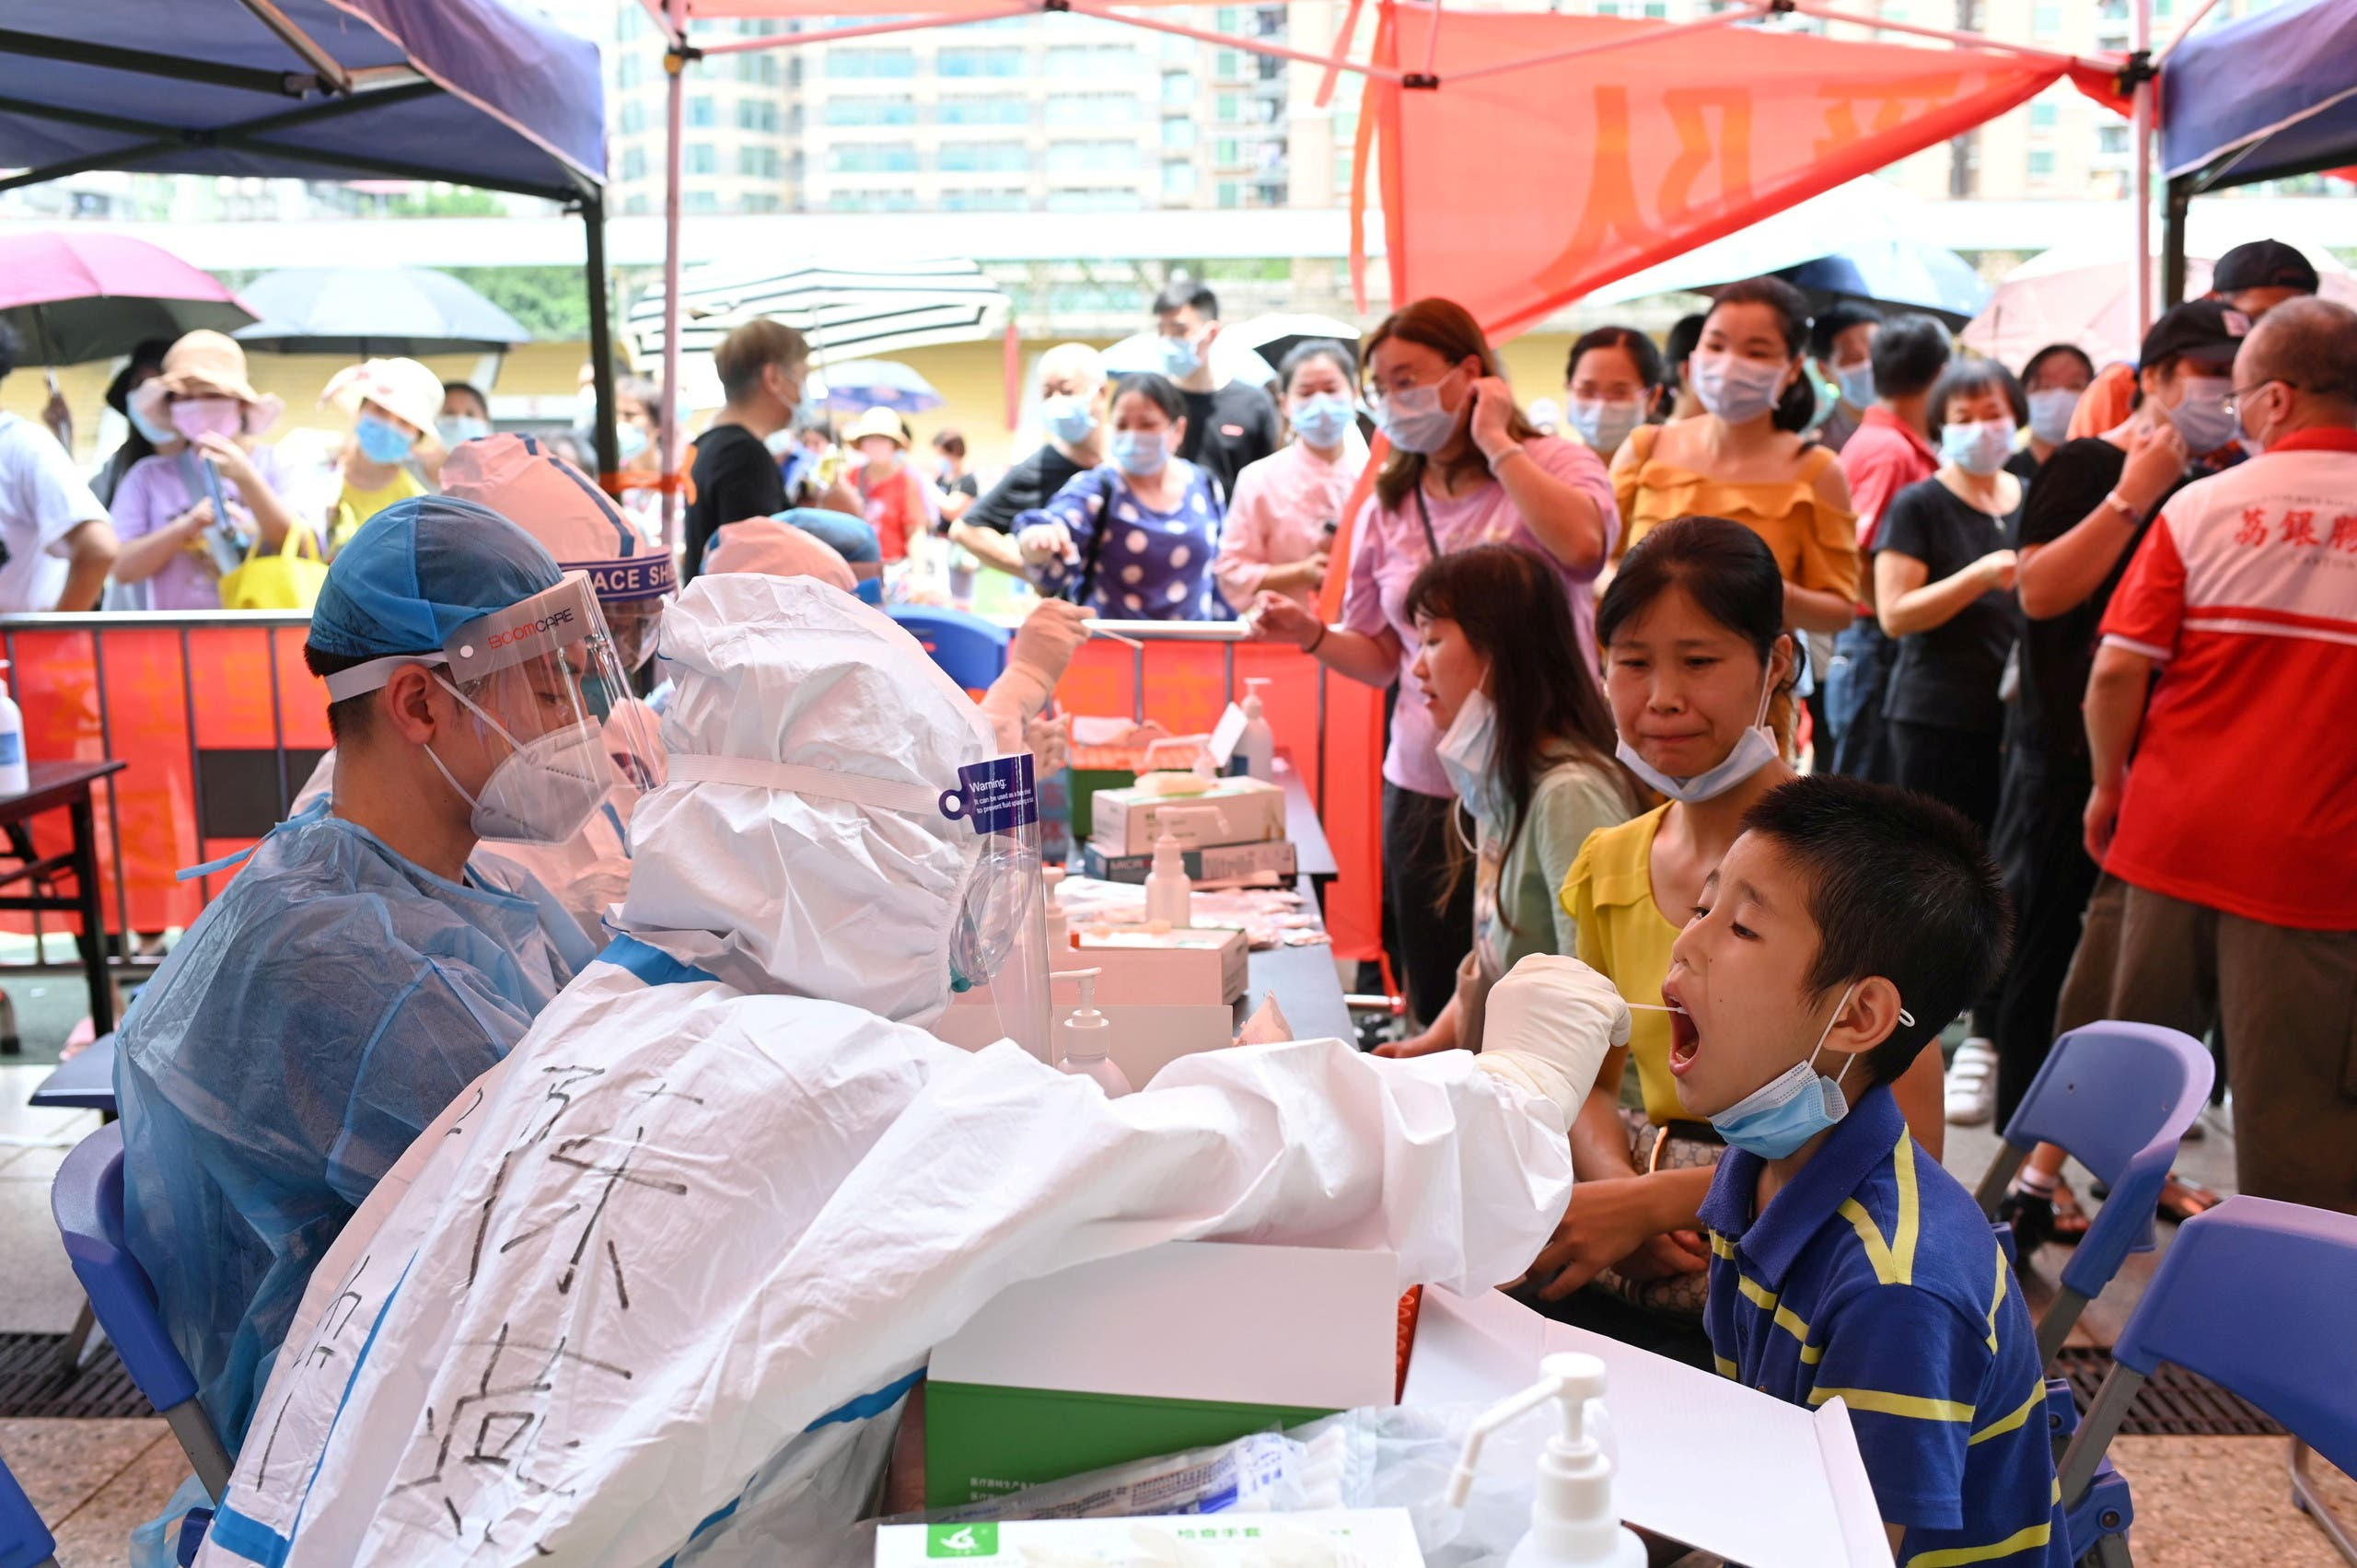 A medical worker collects a swab from a resident during a mass testing for the coronavirus disease (COVID-19) at a makeshift testing site at a stadium in Guangzhou, Guangdong province, China May 30, 2021. (File Photo: Reuters)